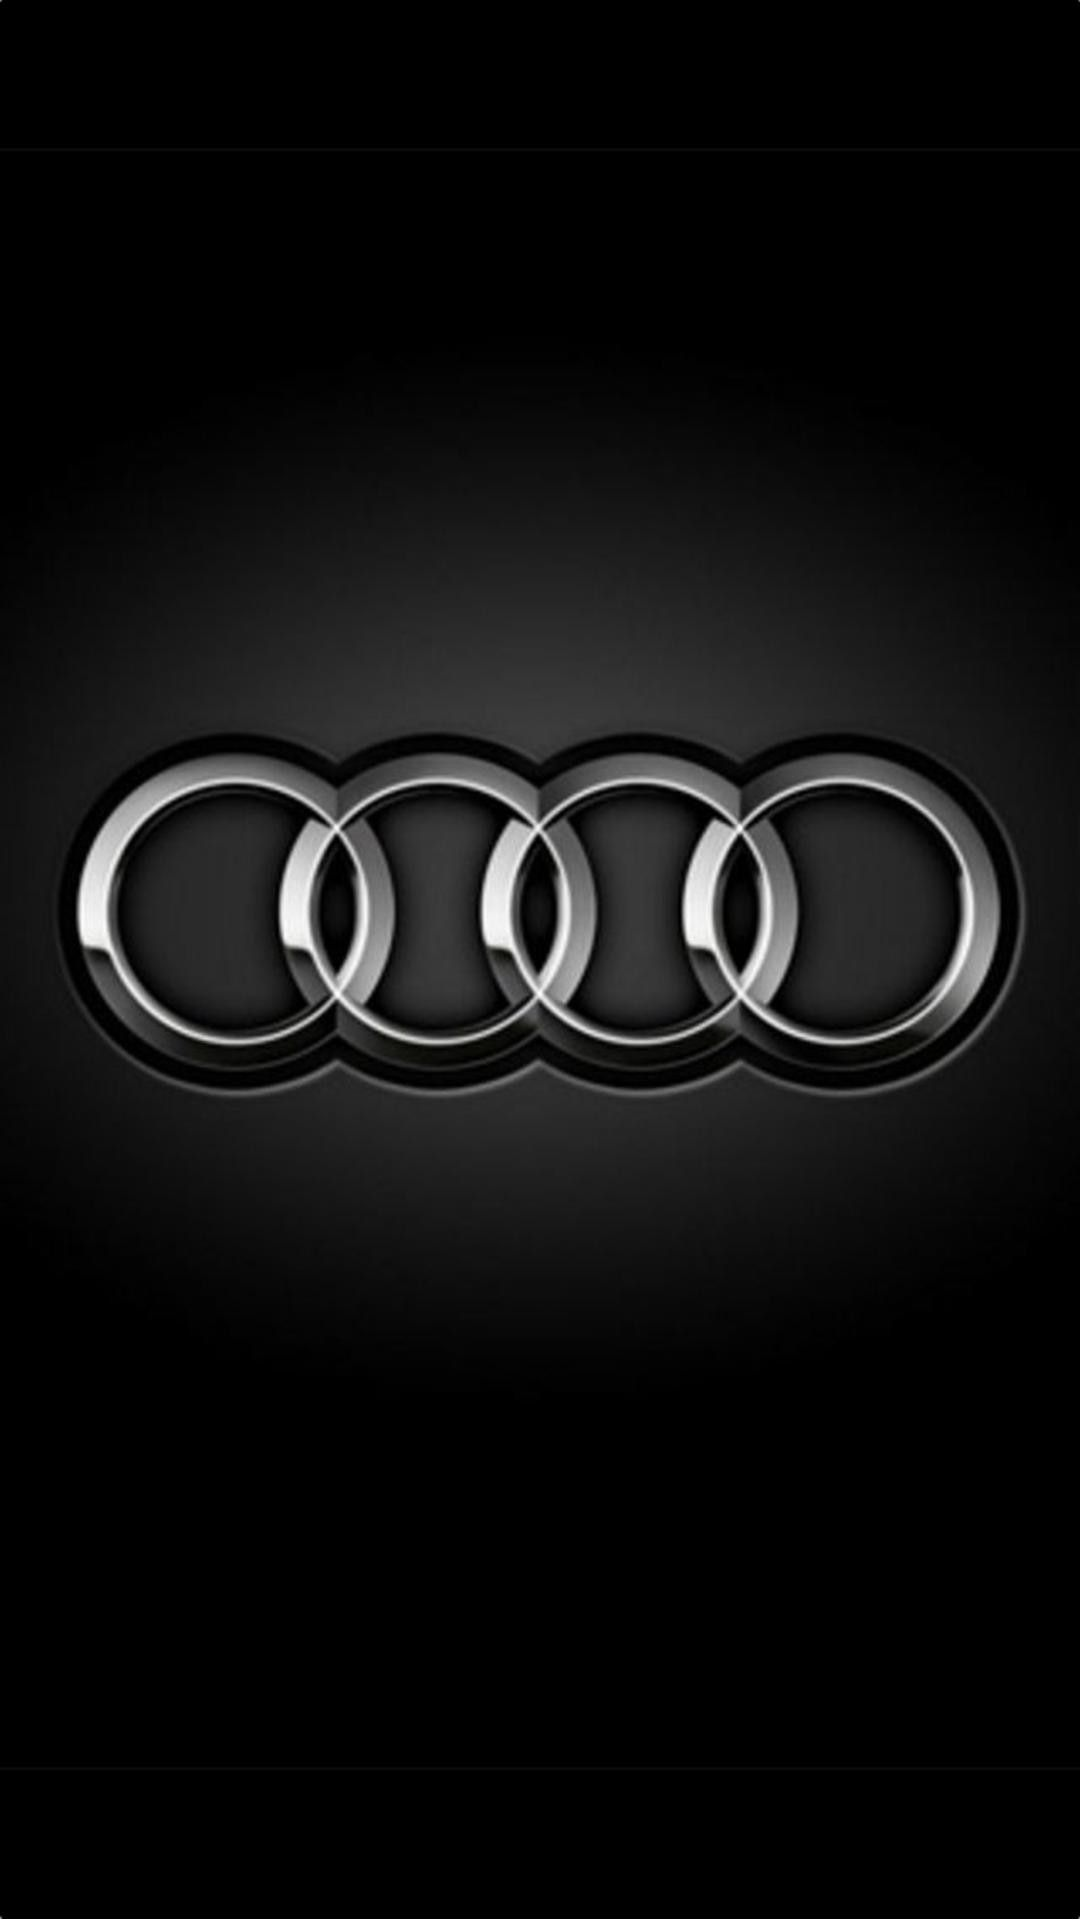 audi car logo iphone 6 plus hd wallpaper - http://freebestpicture